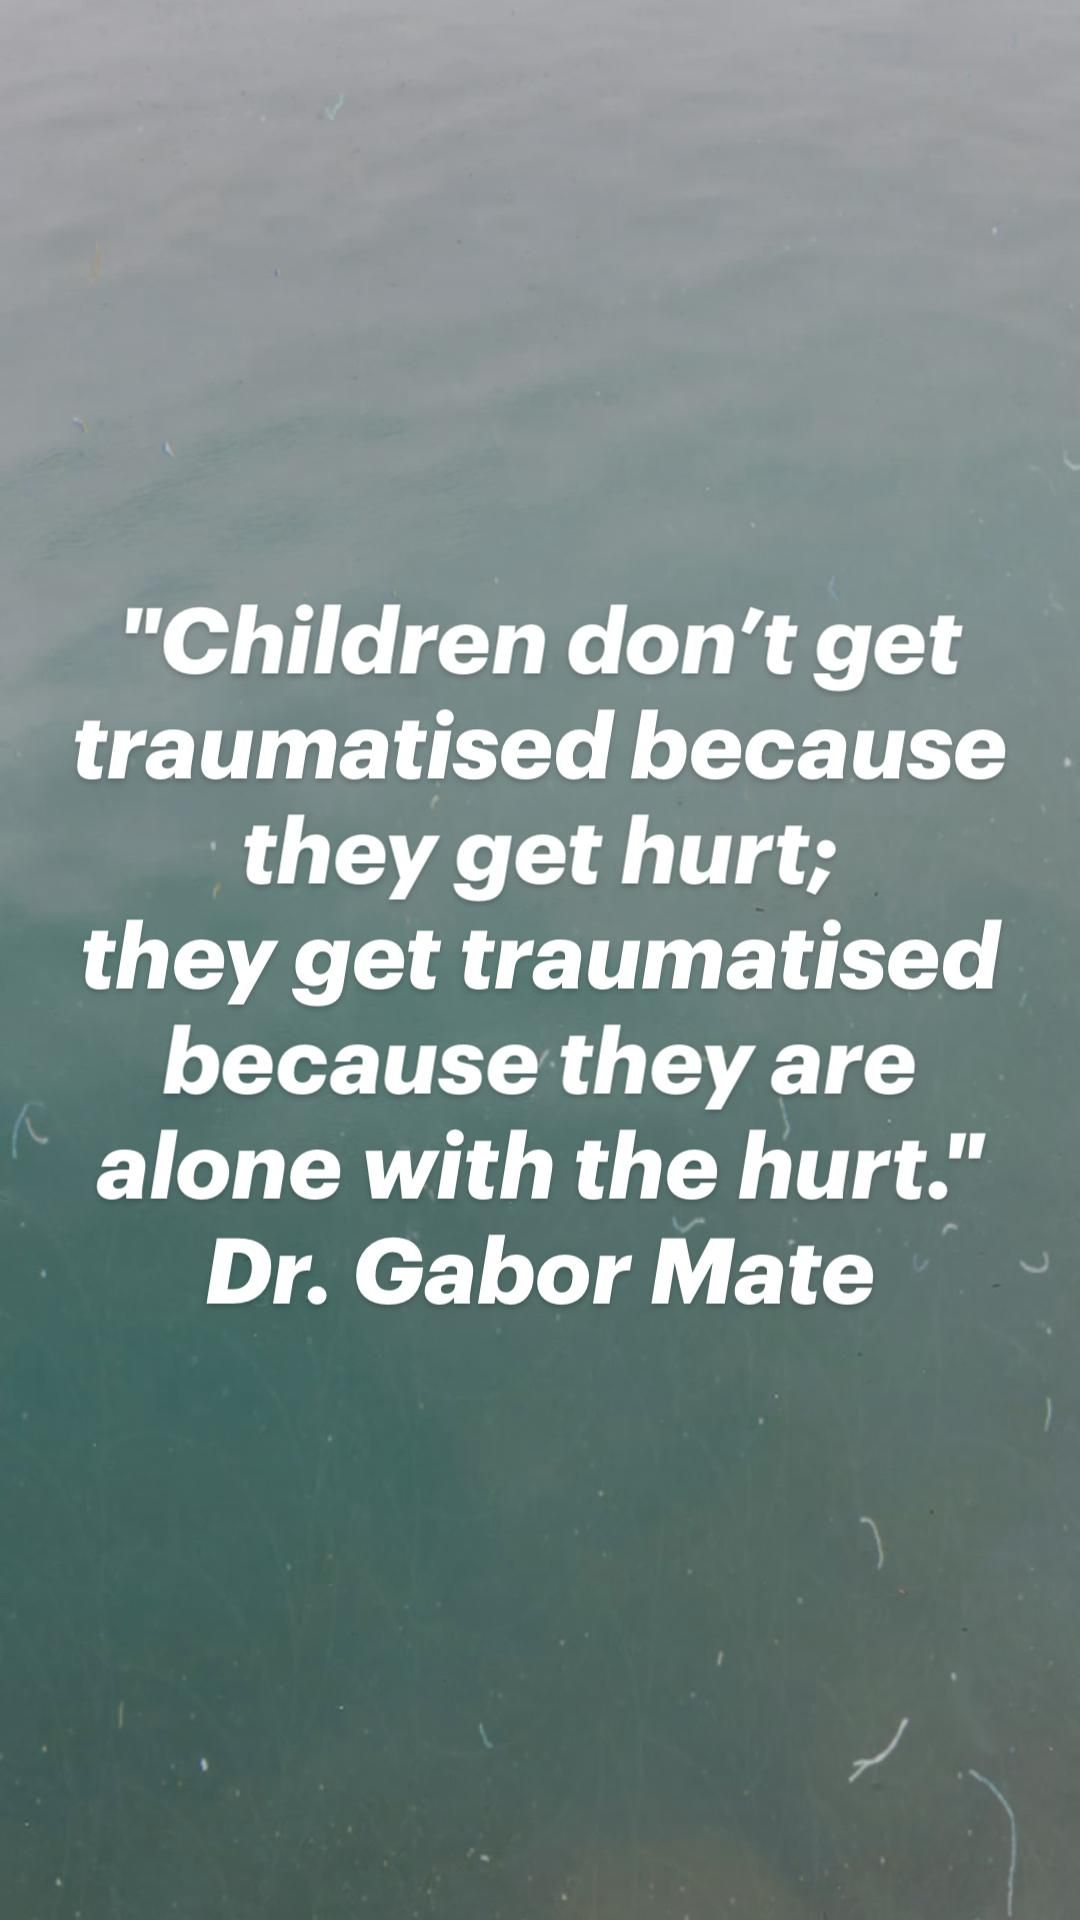 Dr. Gabor Mate's quote on trauma.